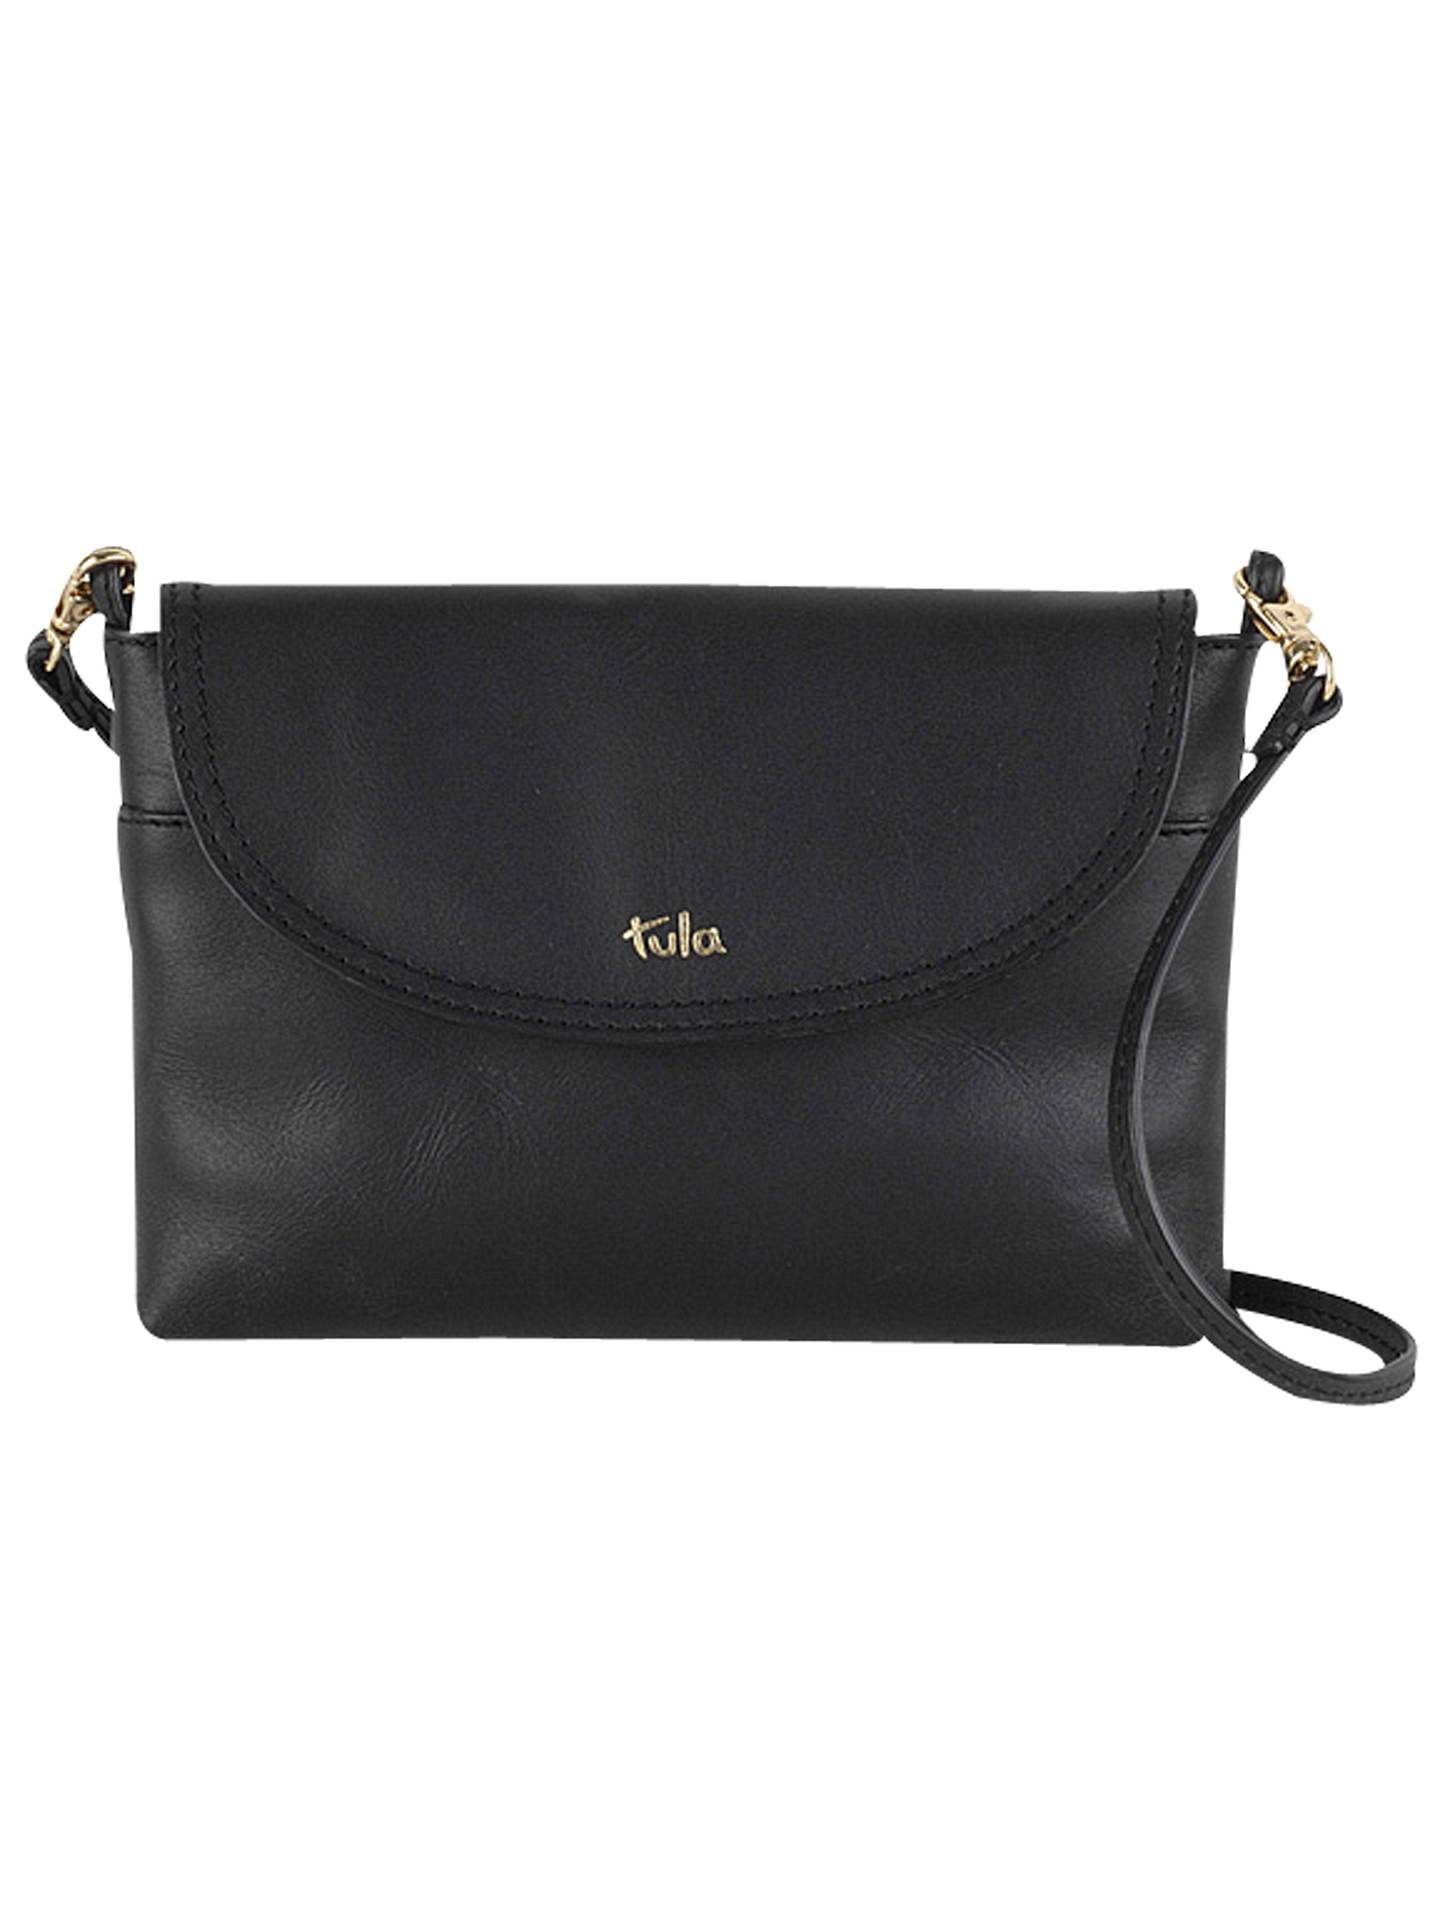 55b35c841b Buy Tula Party Small Leather Cross Body Flap Bag, Smooth Black Online at  johnlewis.